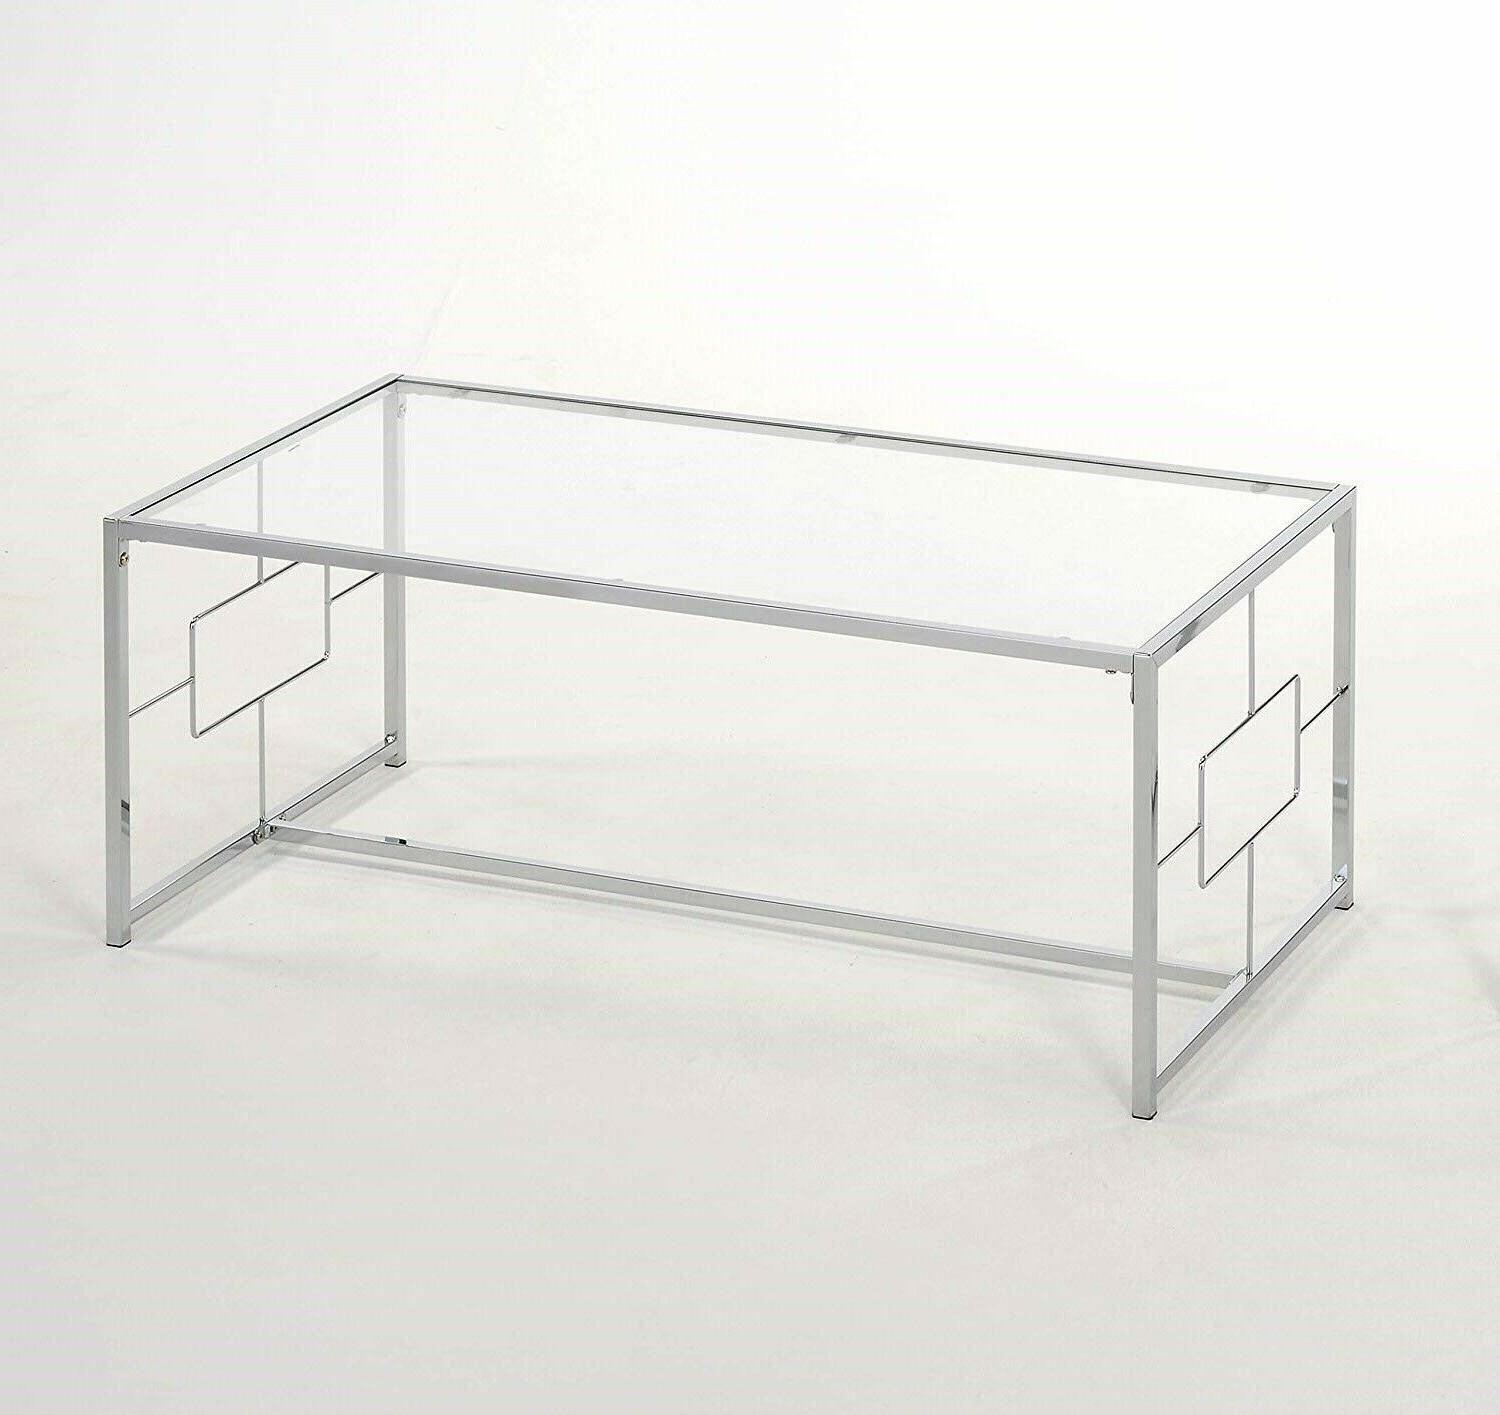 1PerfectChoice Chrome with Glass Table